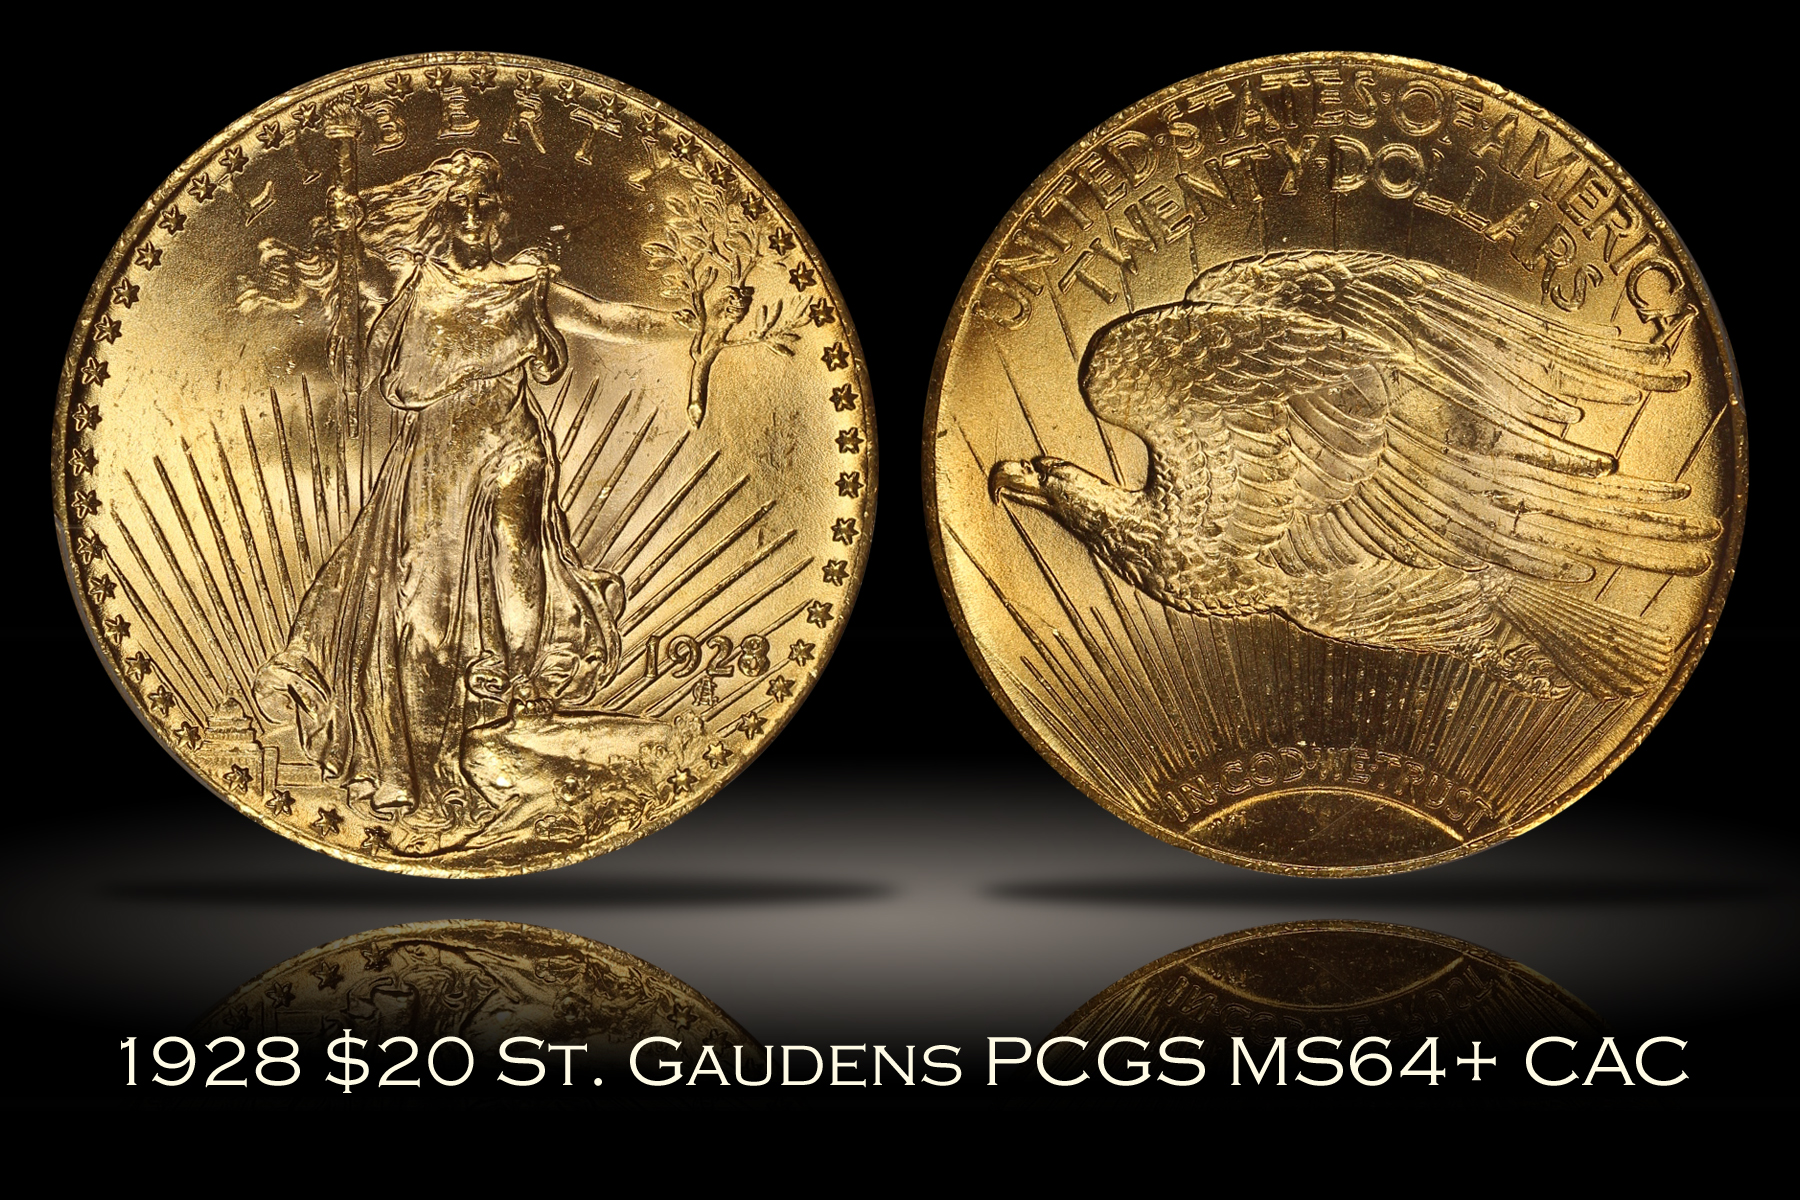 1928 $20 St. Gaudens Gold PCGS MS64+ CAC